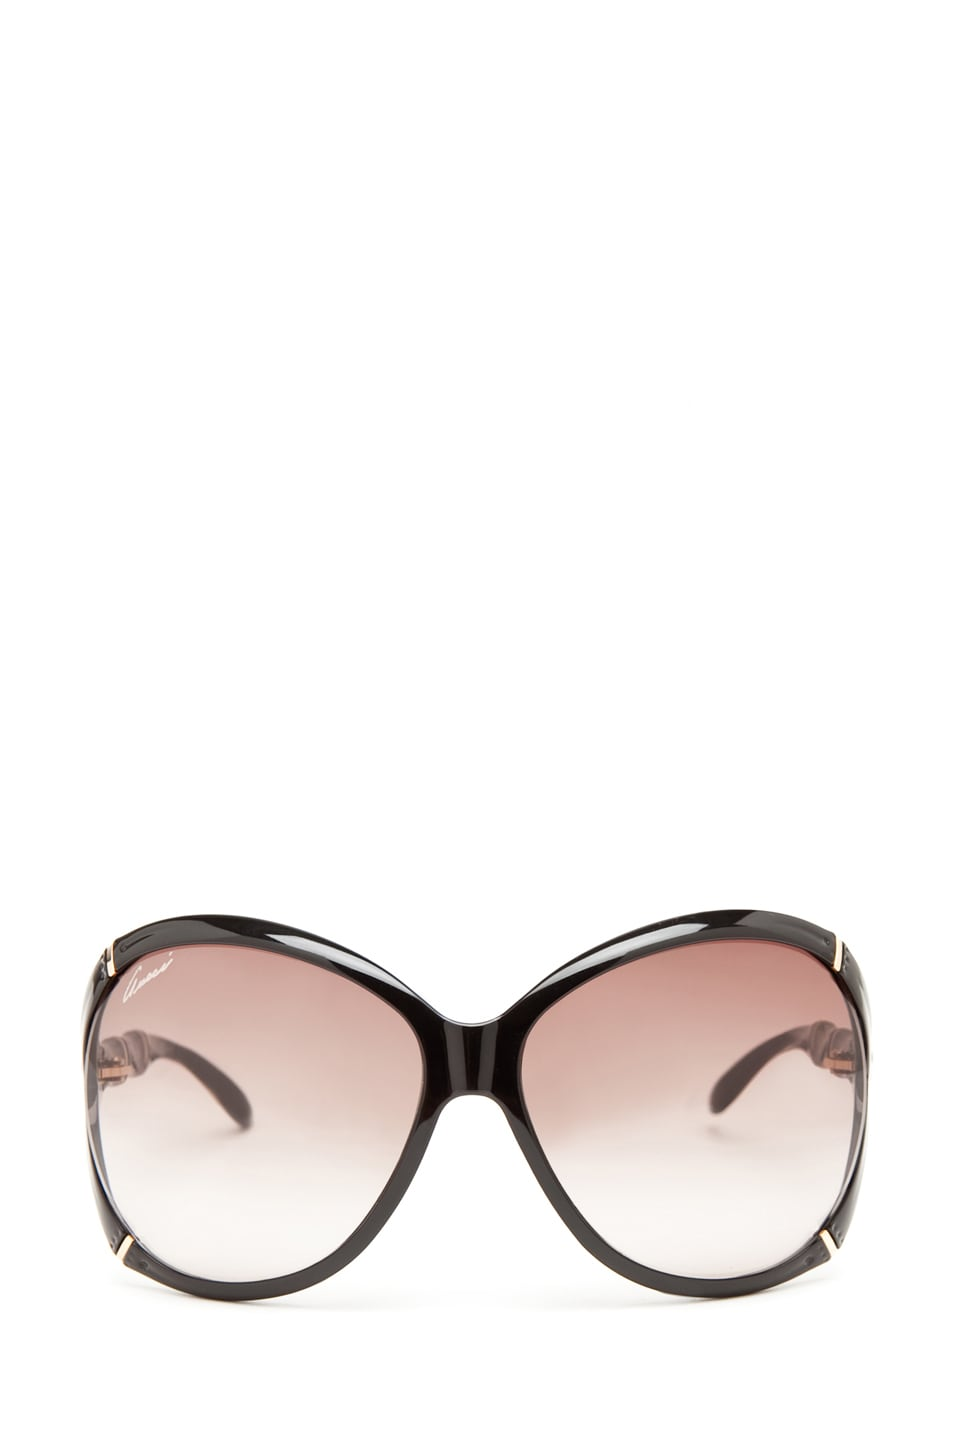 Image 1 of Gucci 3509 Sunglasses in Shiny Black